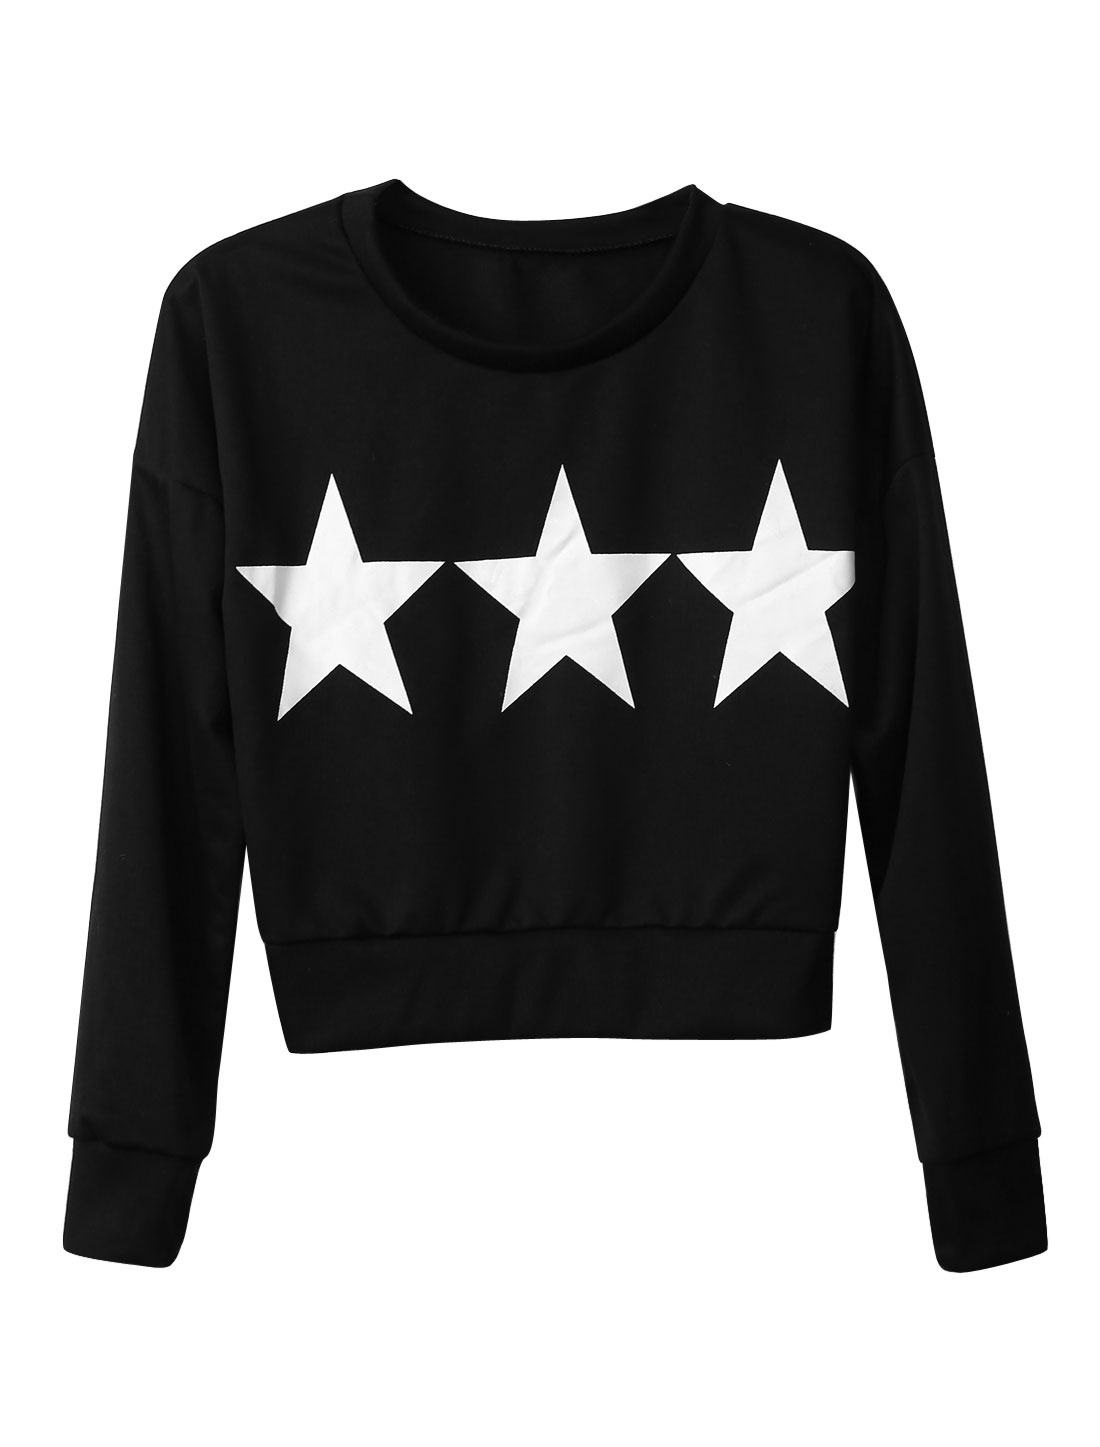 Women Stars Pattern Long Sleeves Korean Style Crop Top Black XS